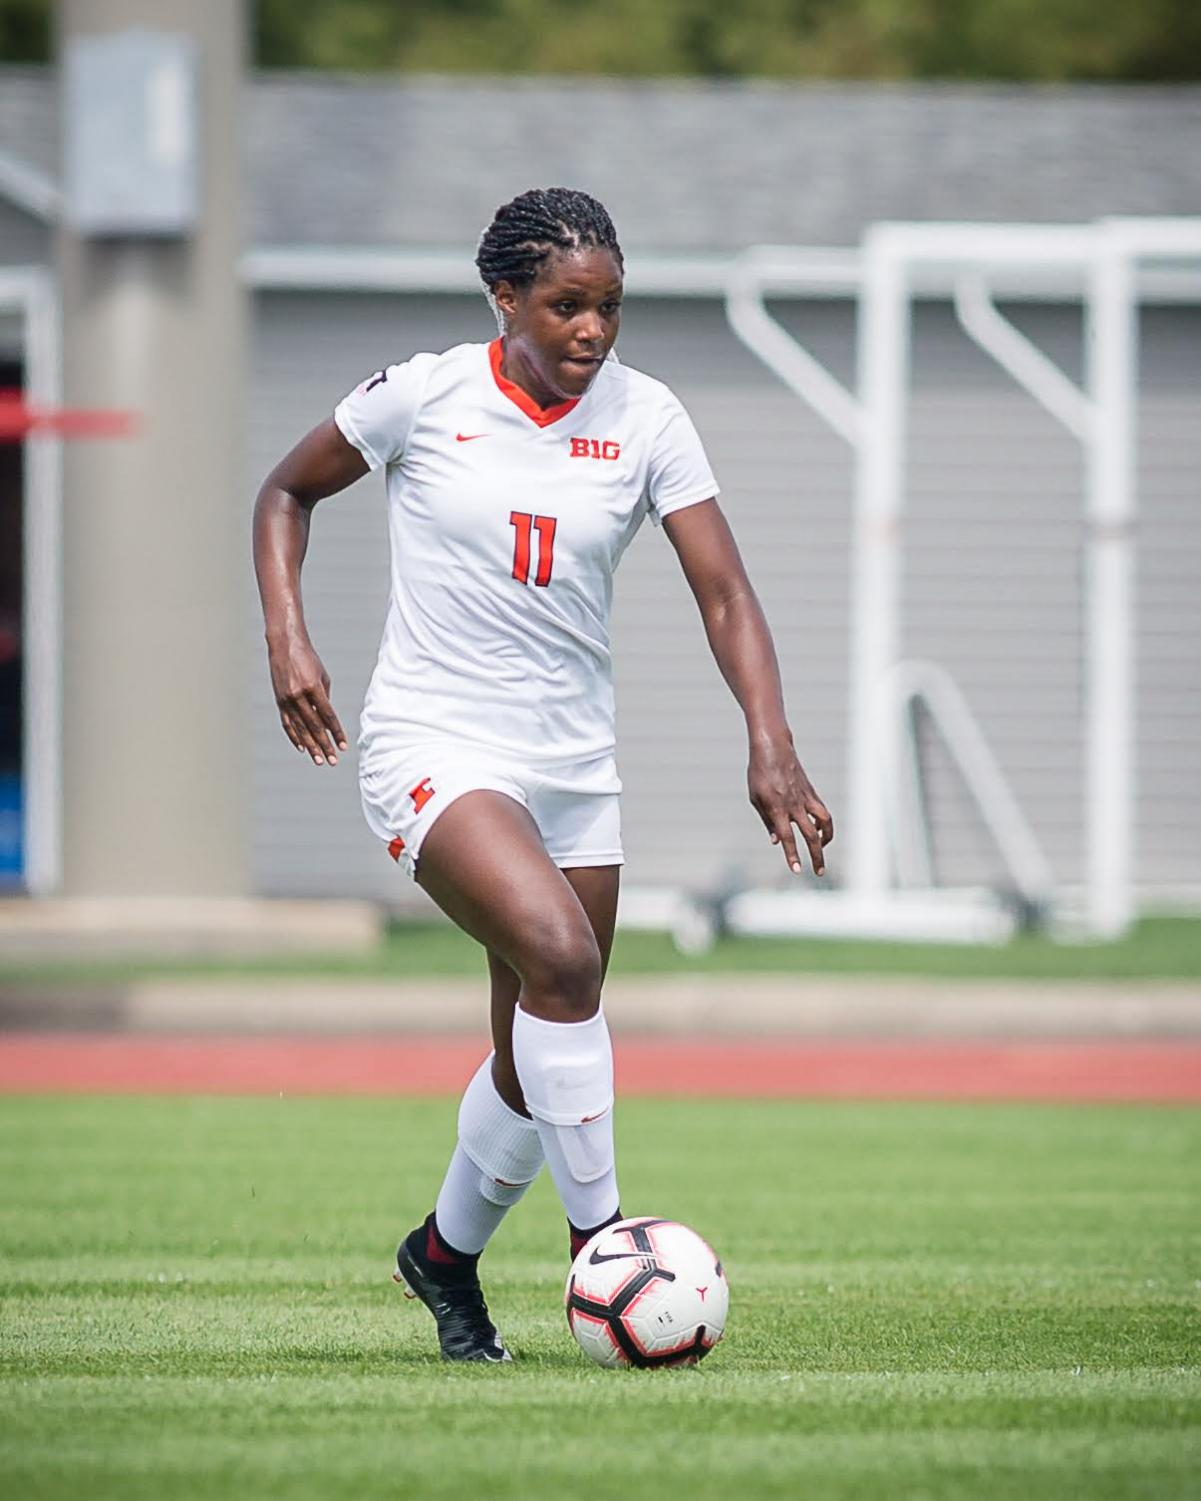 Illinois forward Patricia George (11) dribbles down the field during the game against Northern Illinois at the Illinois Soccer Stadium on Sunday, Aug. 26, 2018. The Illini won 8-0.